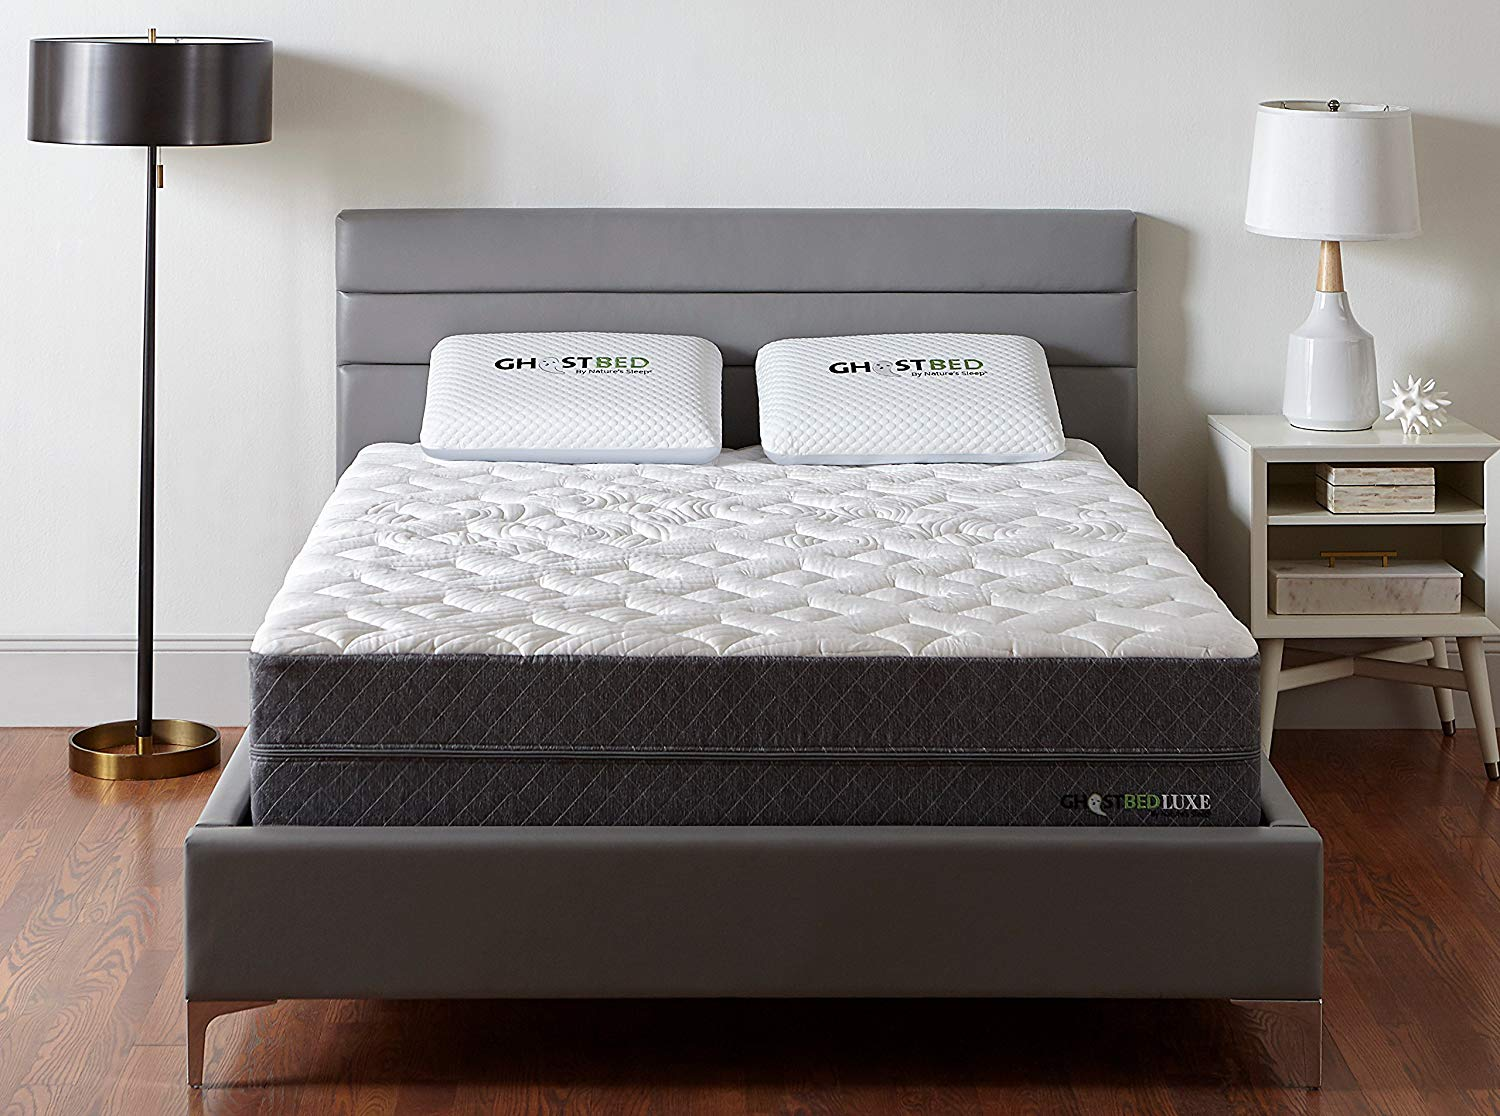 GhostBed Gel Mattress Review by www.snoremagazine.com